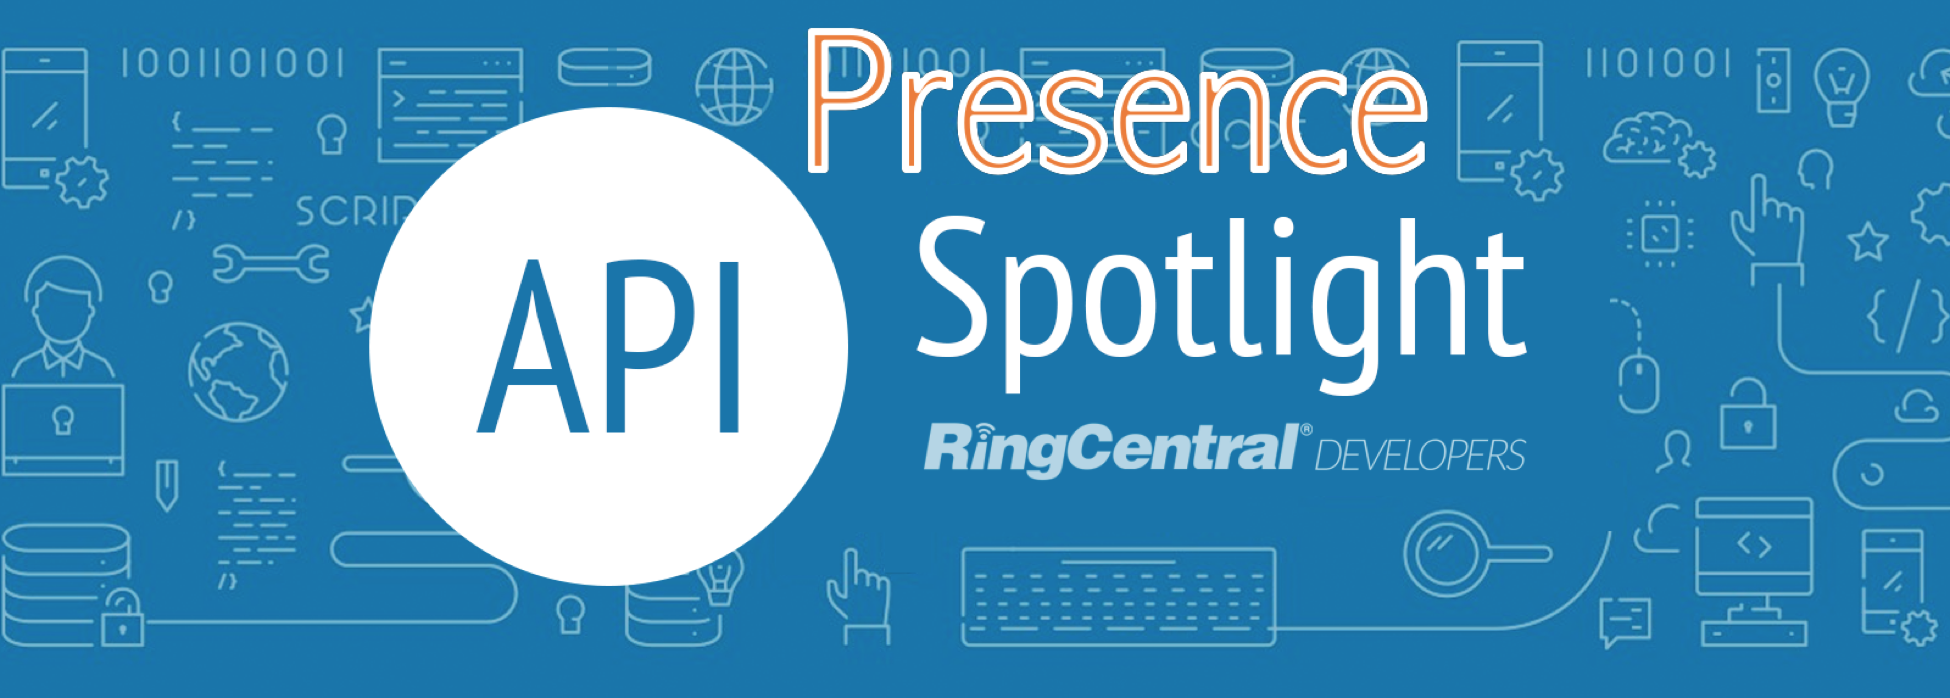 API Spotlight: Presence - RingCentral Developers - Medium